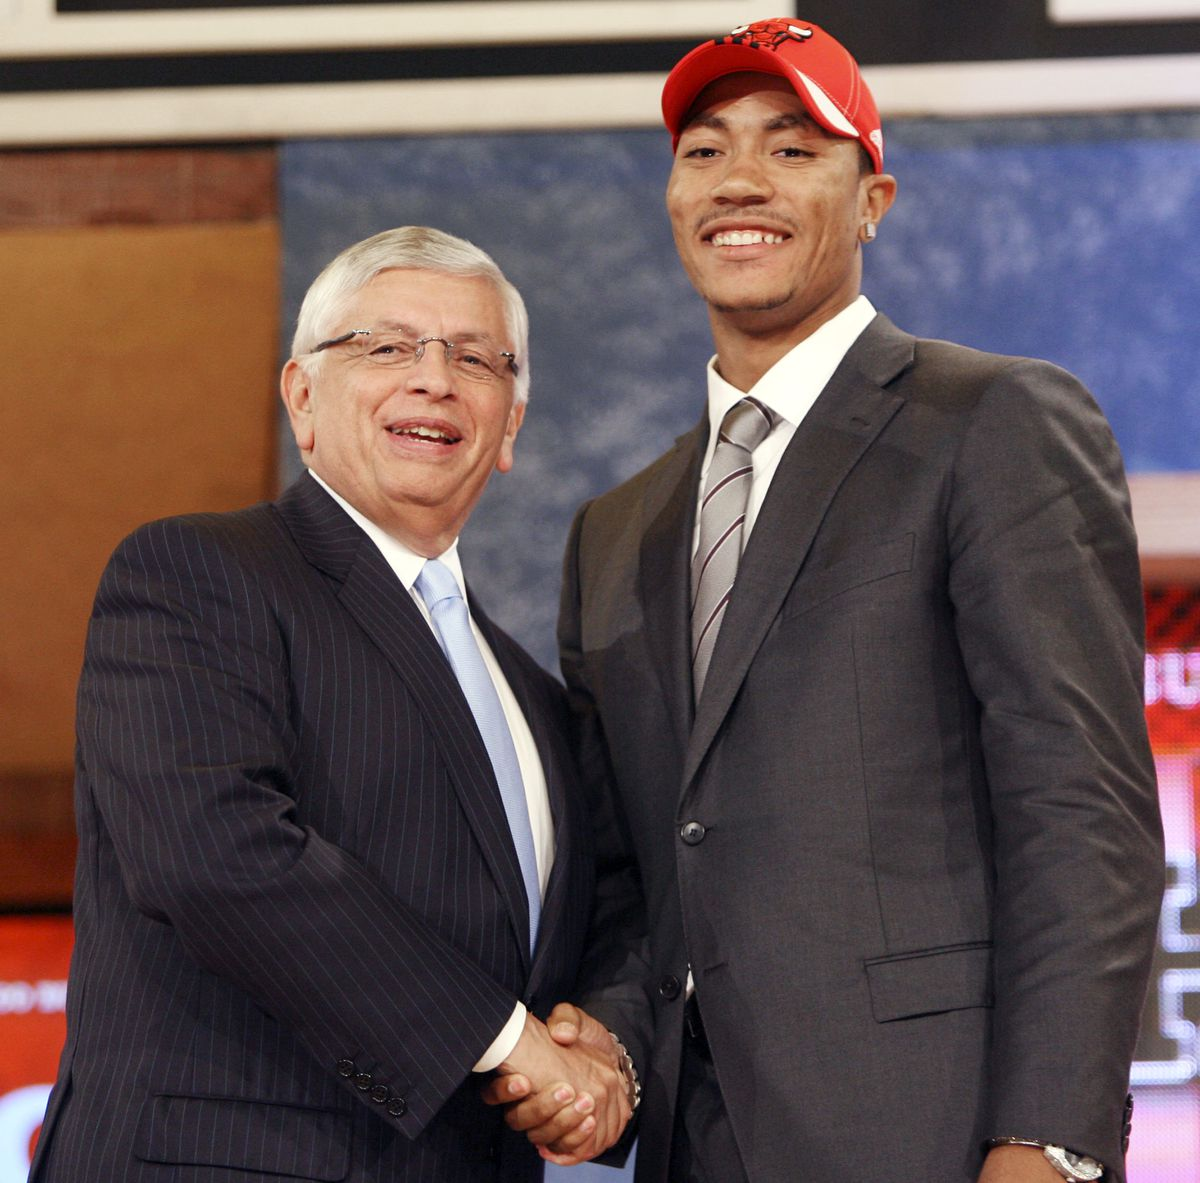 NBA commissioner David Stern, left, poses with number one draft pick Derrick Rose, who was picked by the Chicago Bulls, during the first round of the NBA basketball draft, Thursday, June 26, 2008 in New York. | Seth Wenig/Associated Press